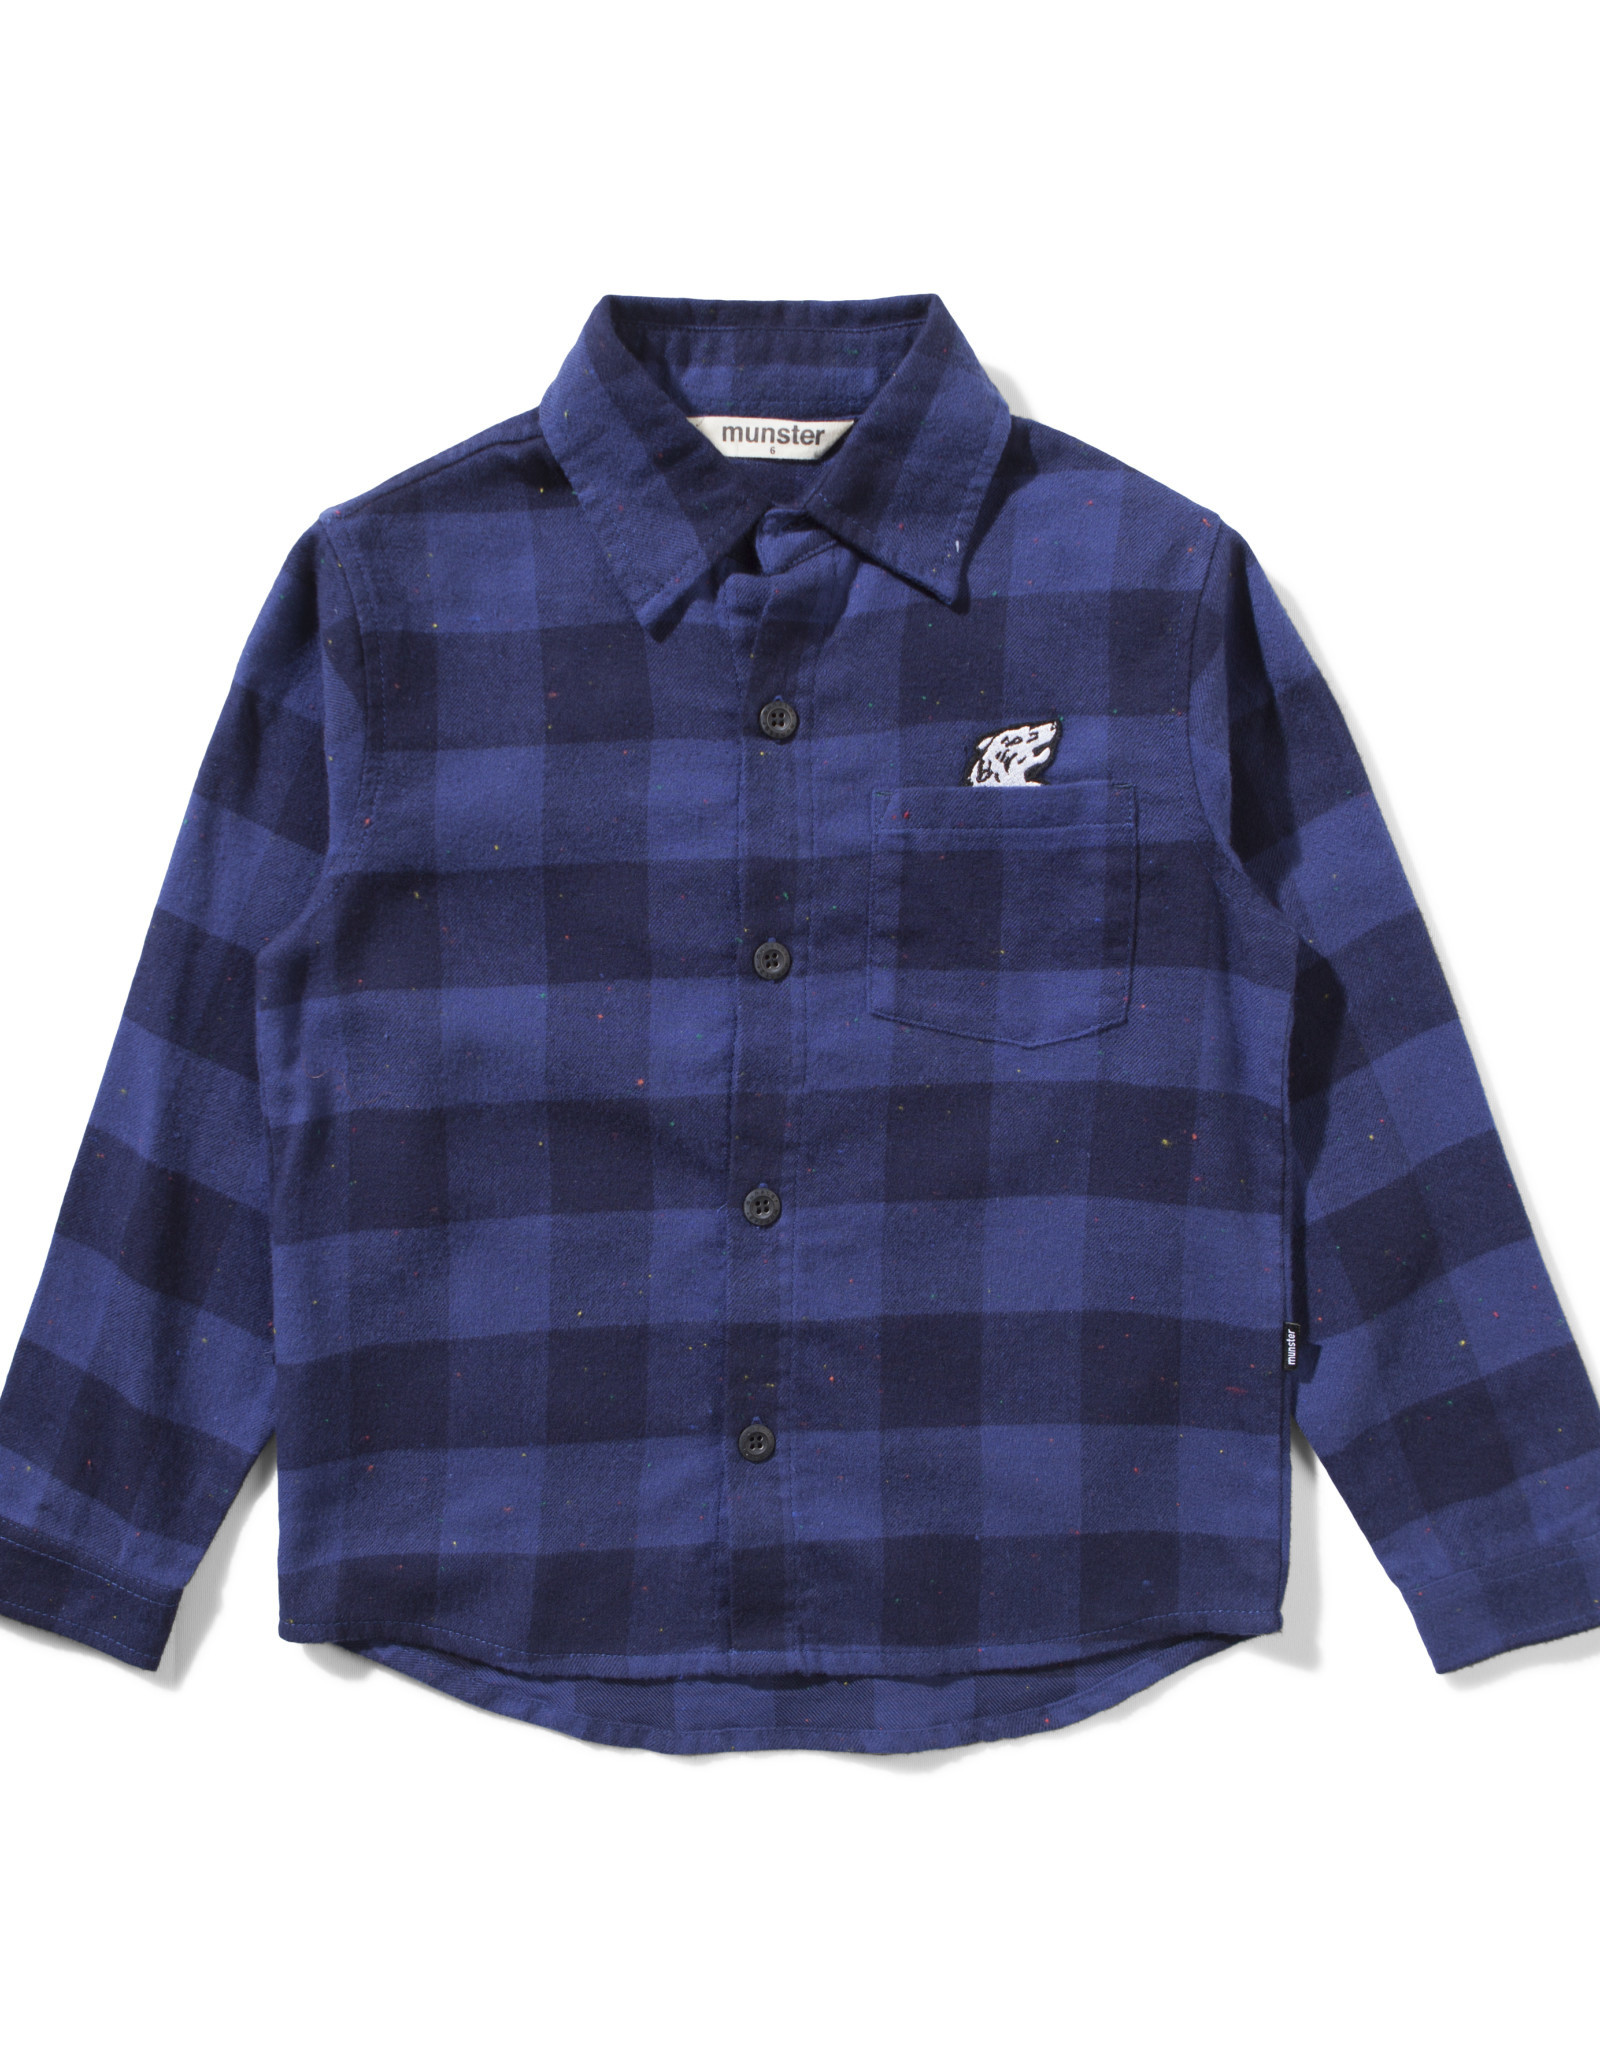 Munster Kids hakuba- blue